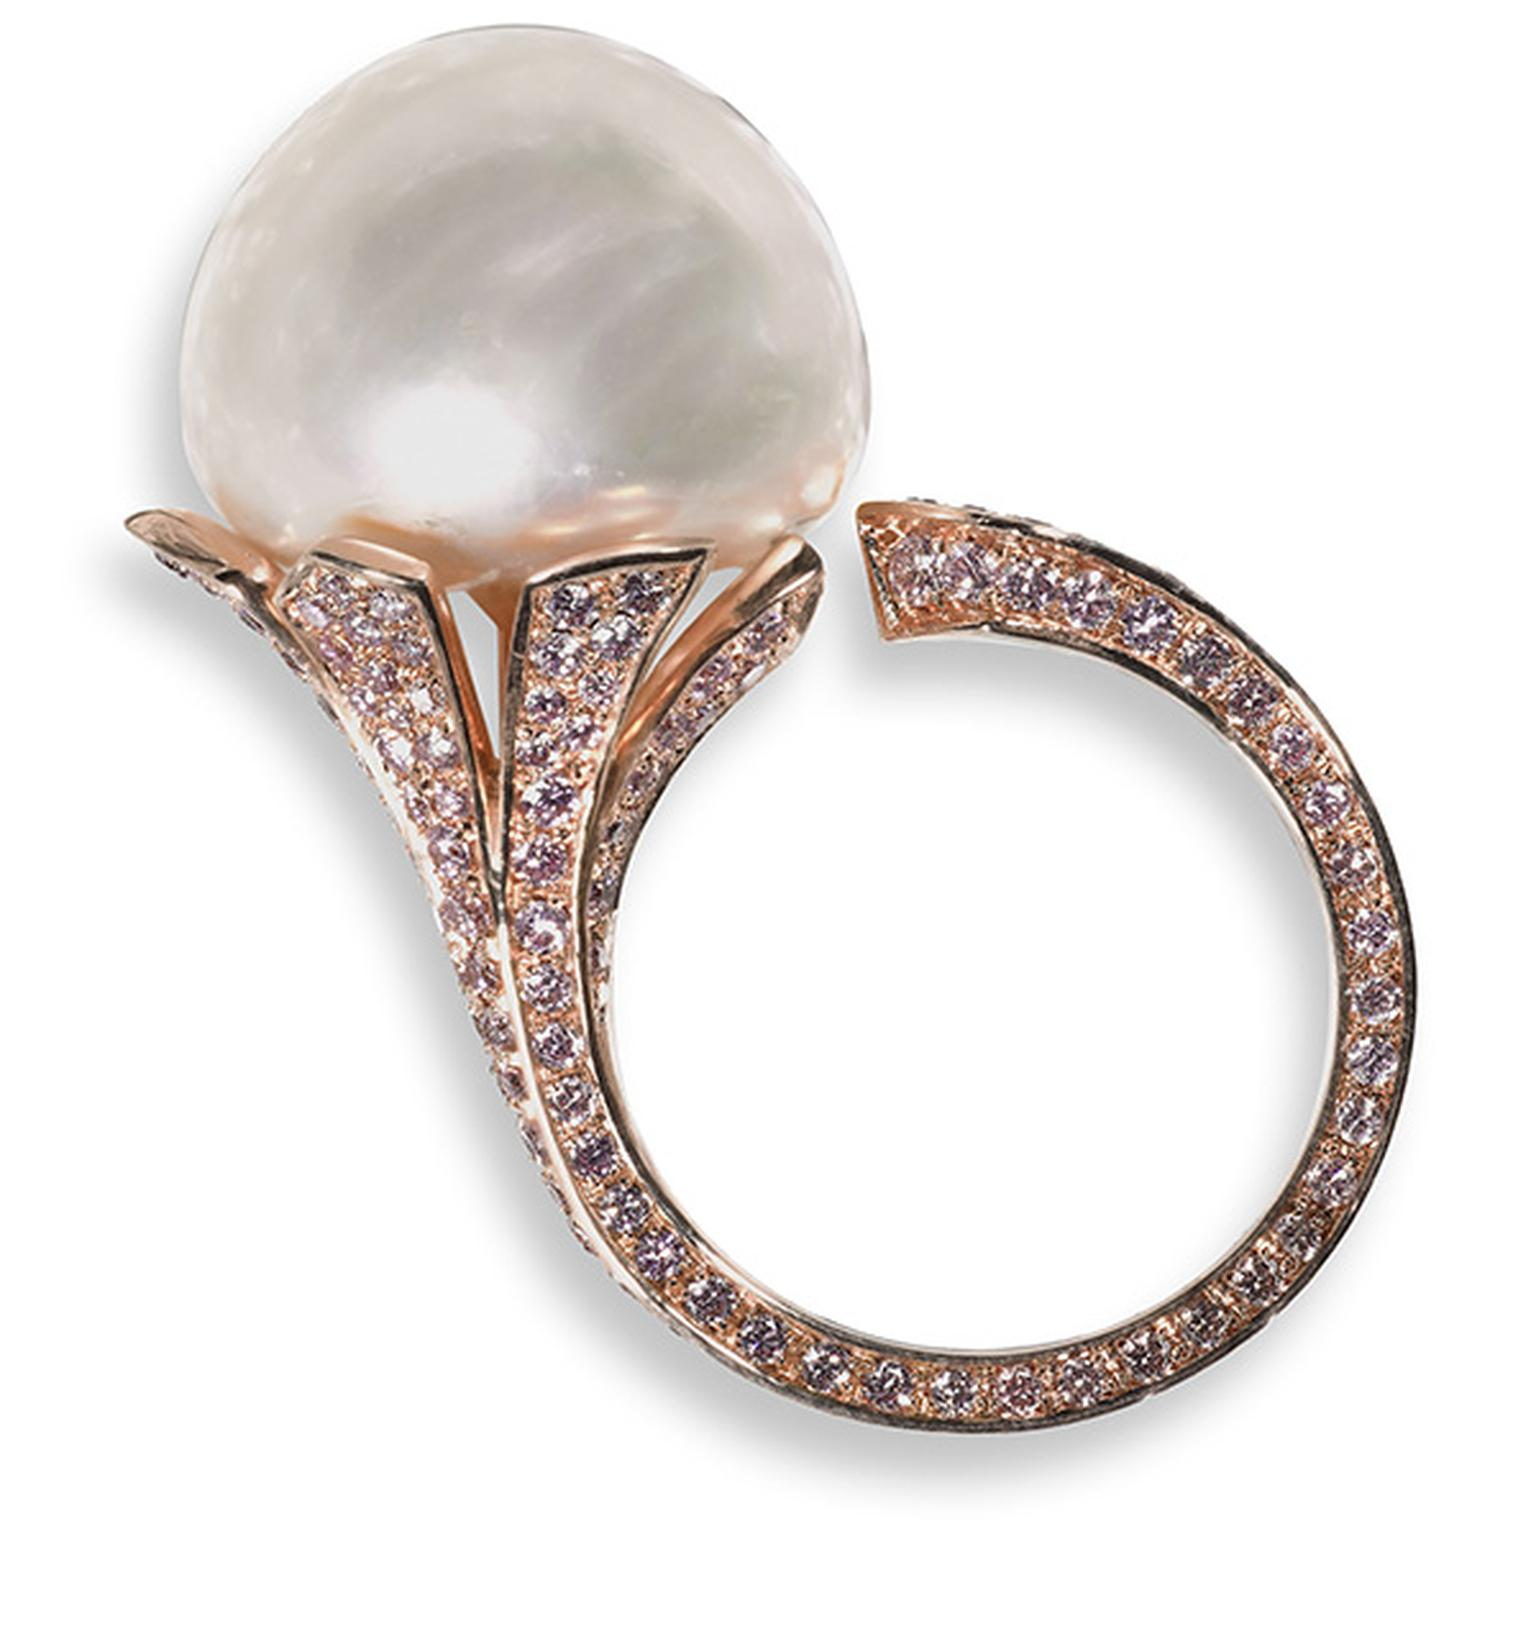 David-Morris-20.80ct-natural-light-cream-button-pearl-mounted-in-18ct-rose-gold-and-set-with-1.74cts-of-pink-micro-set-diamonds.-Retail-price-175000.jpg